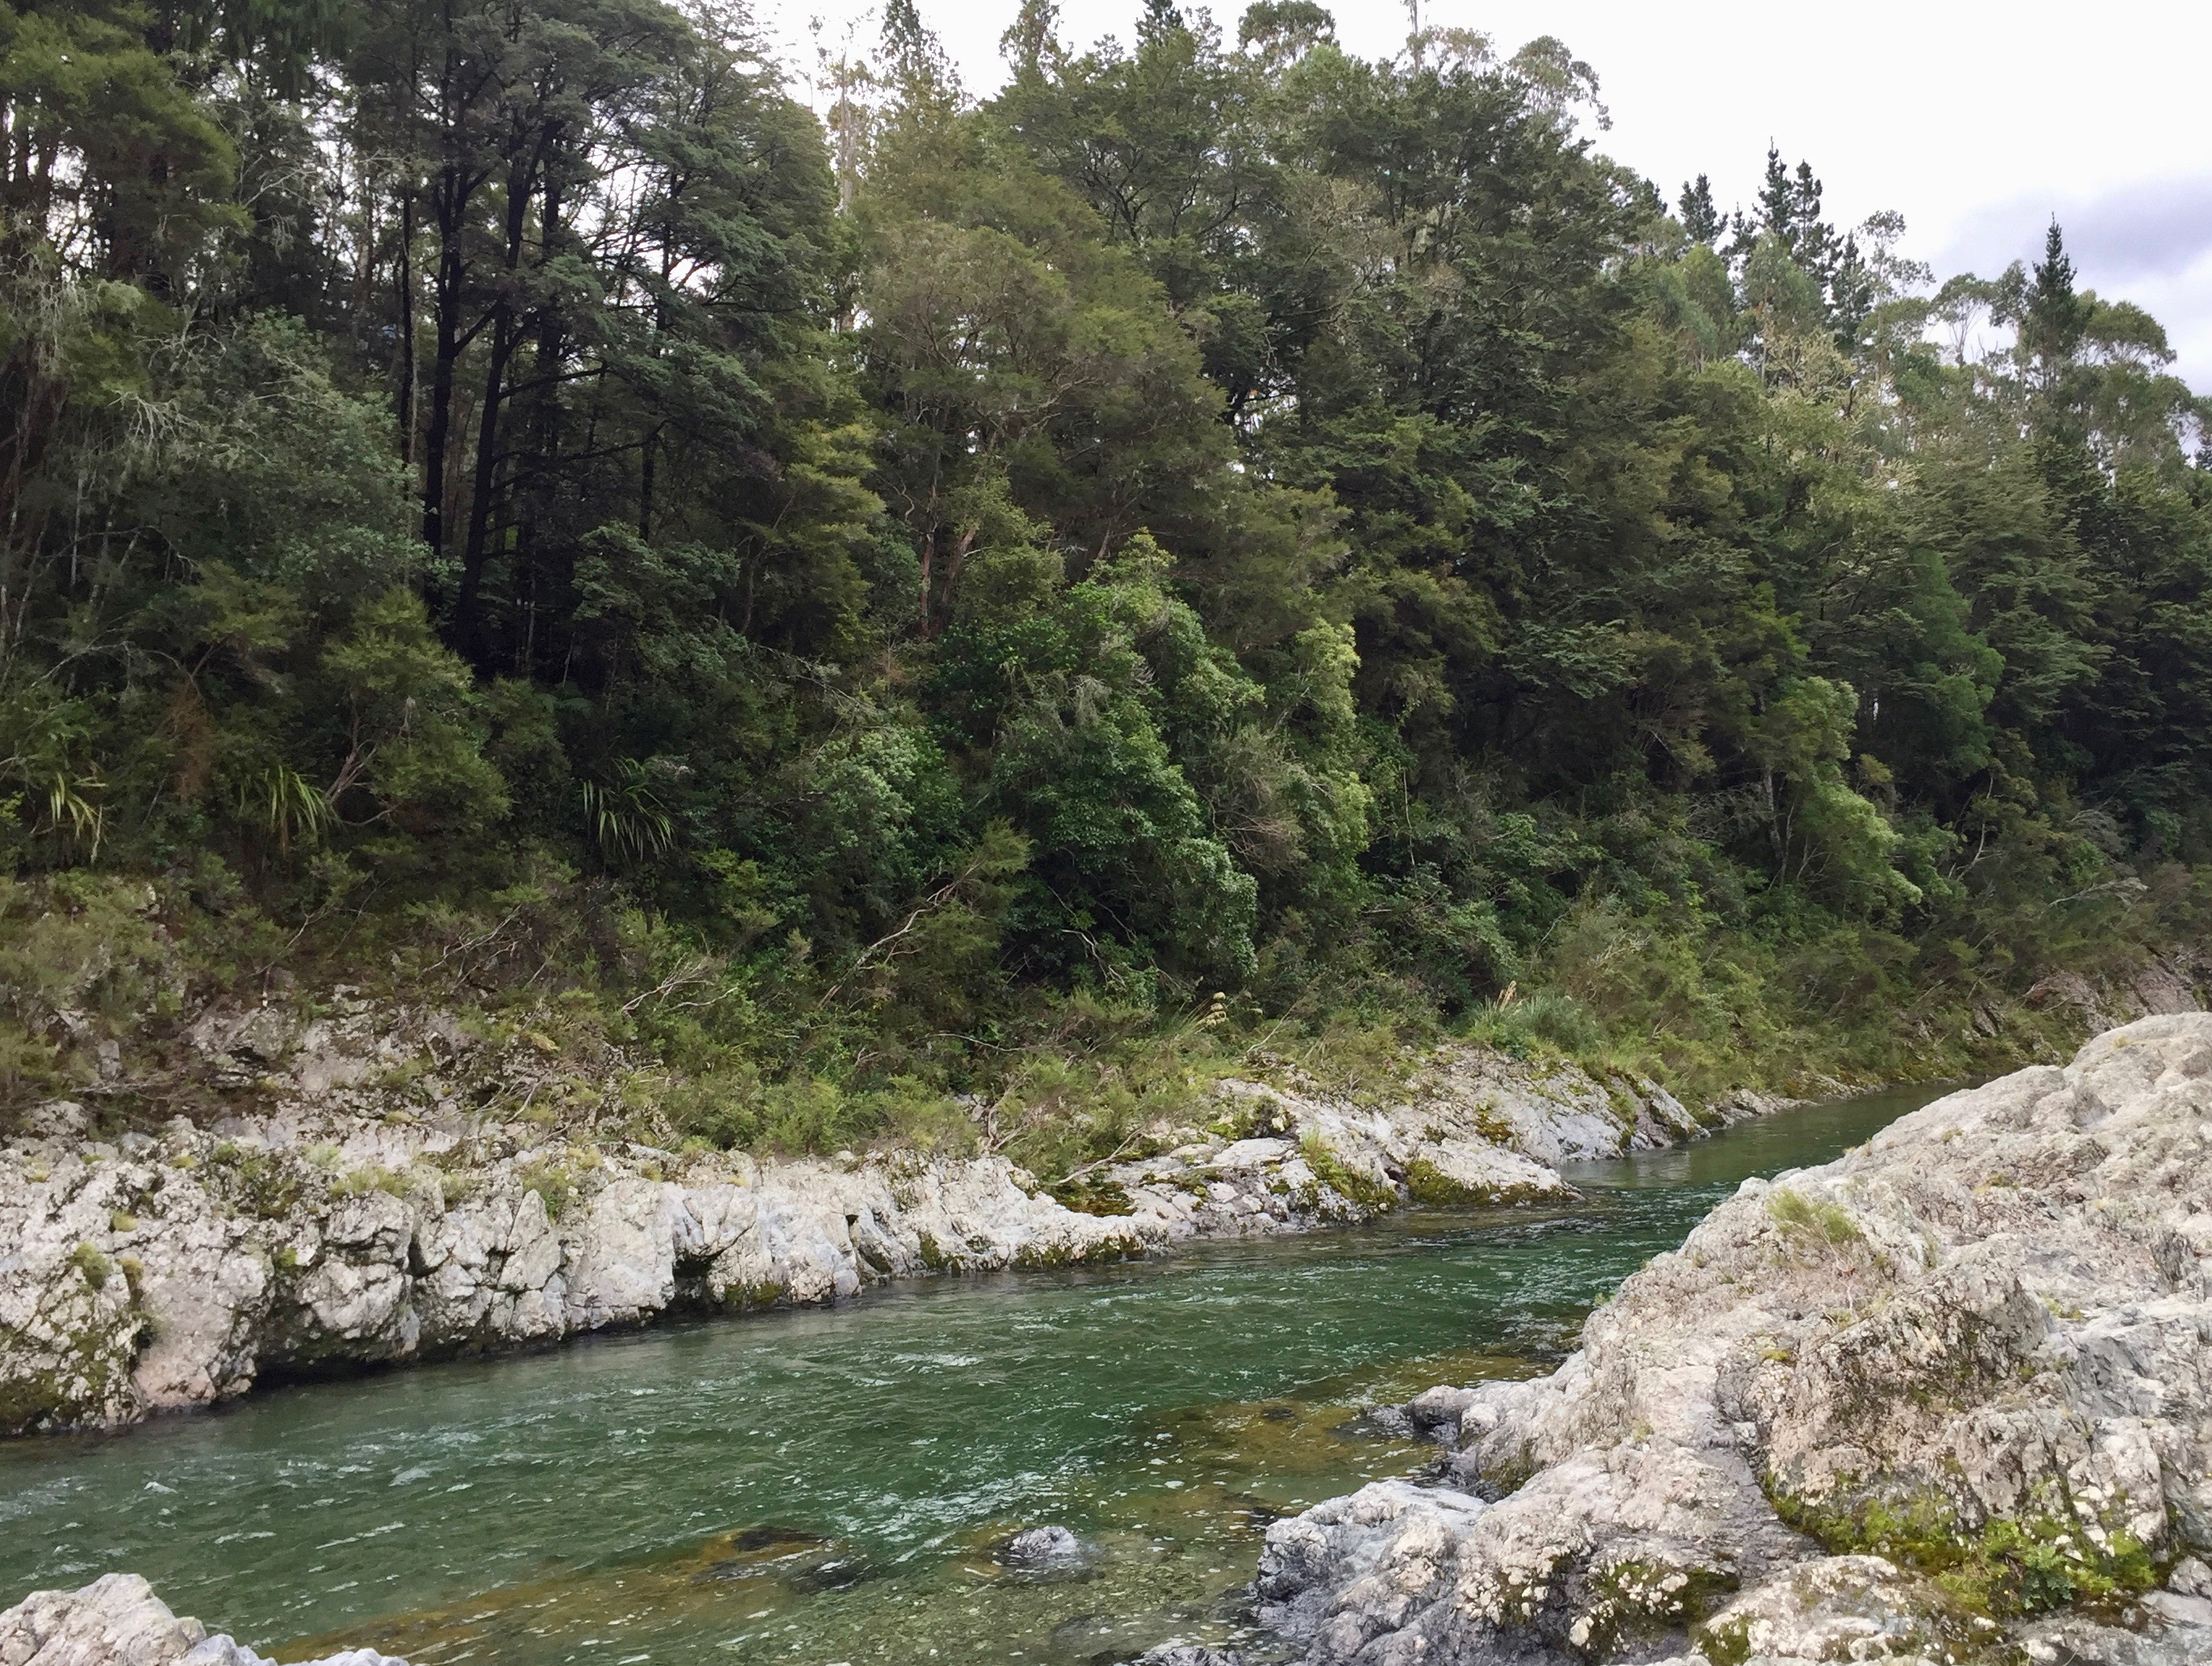 The Pelorus River